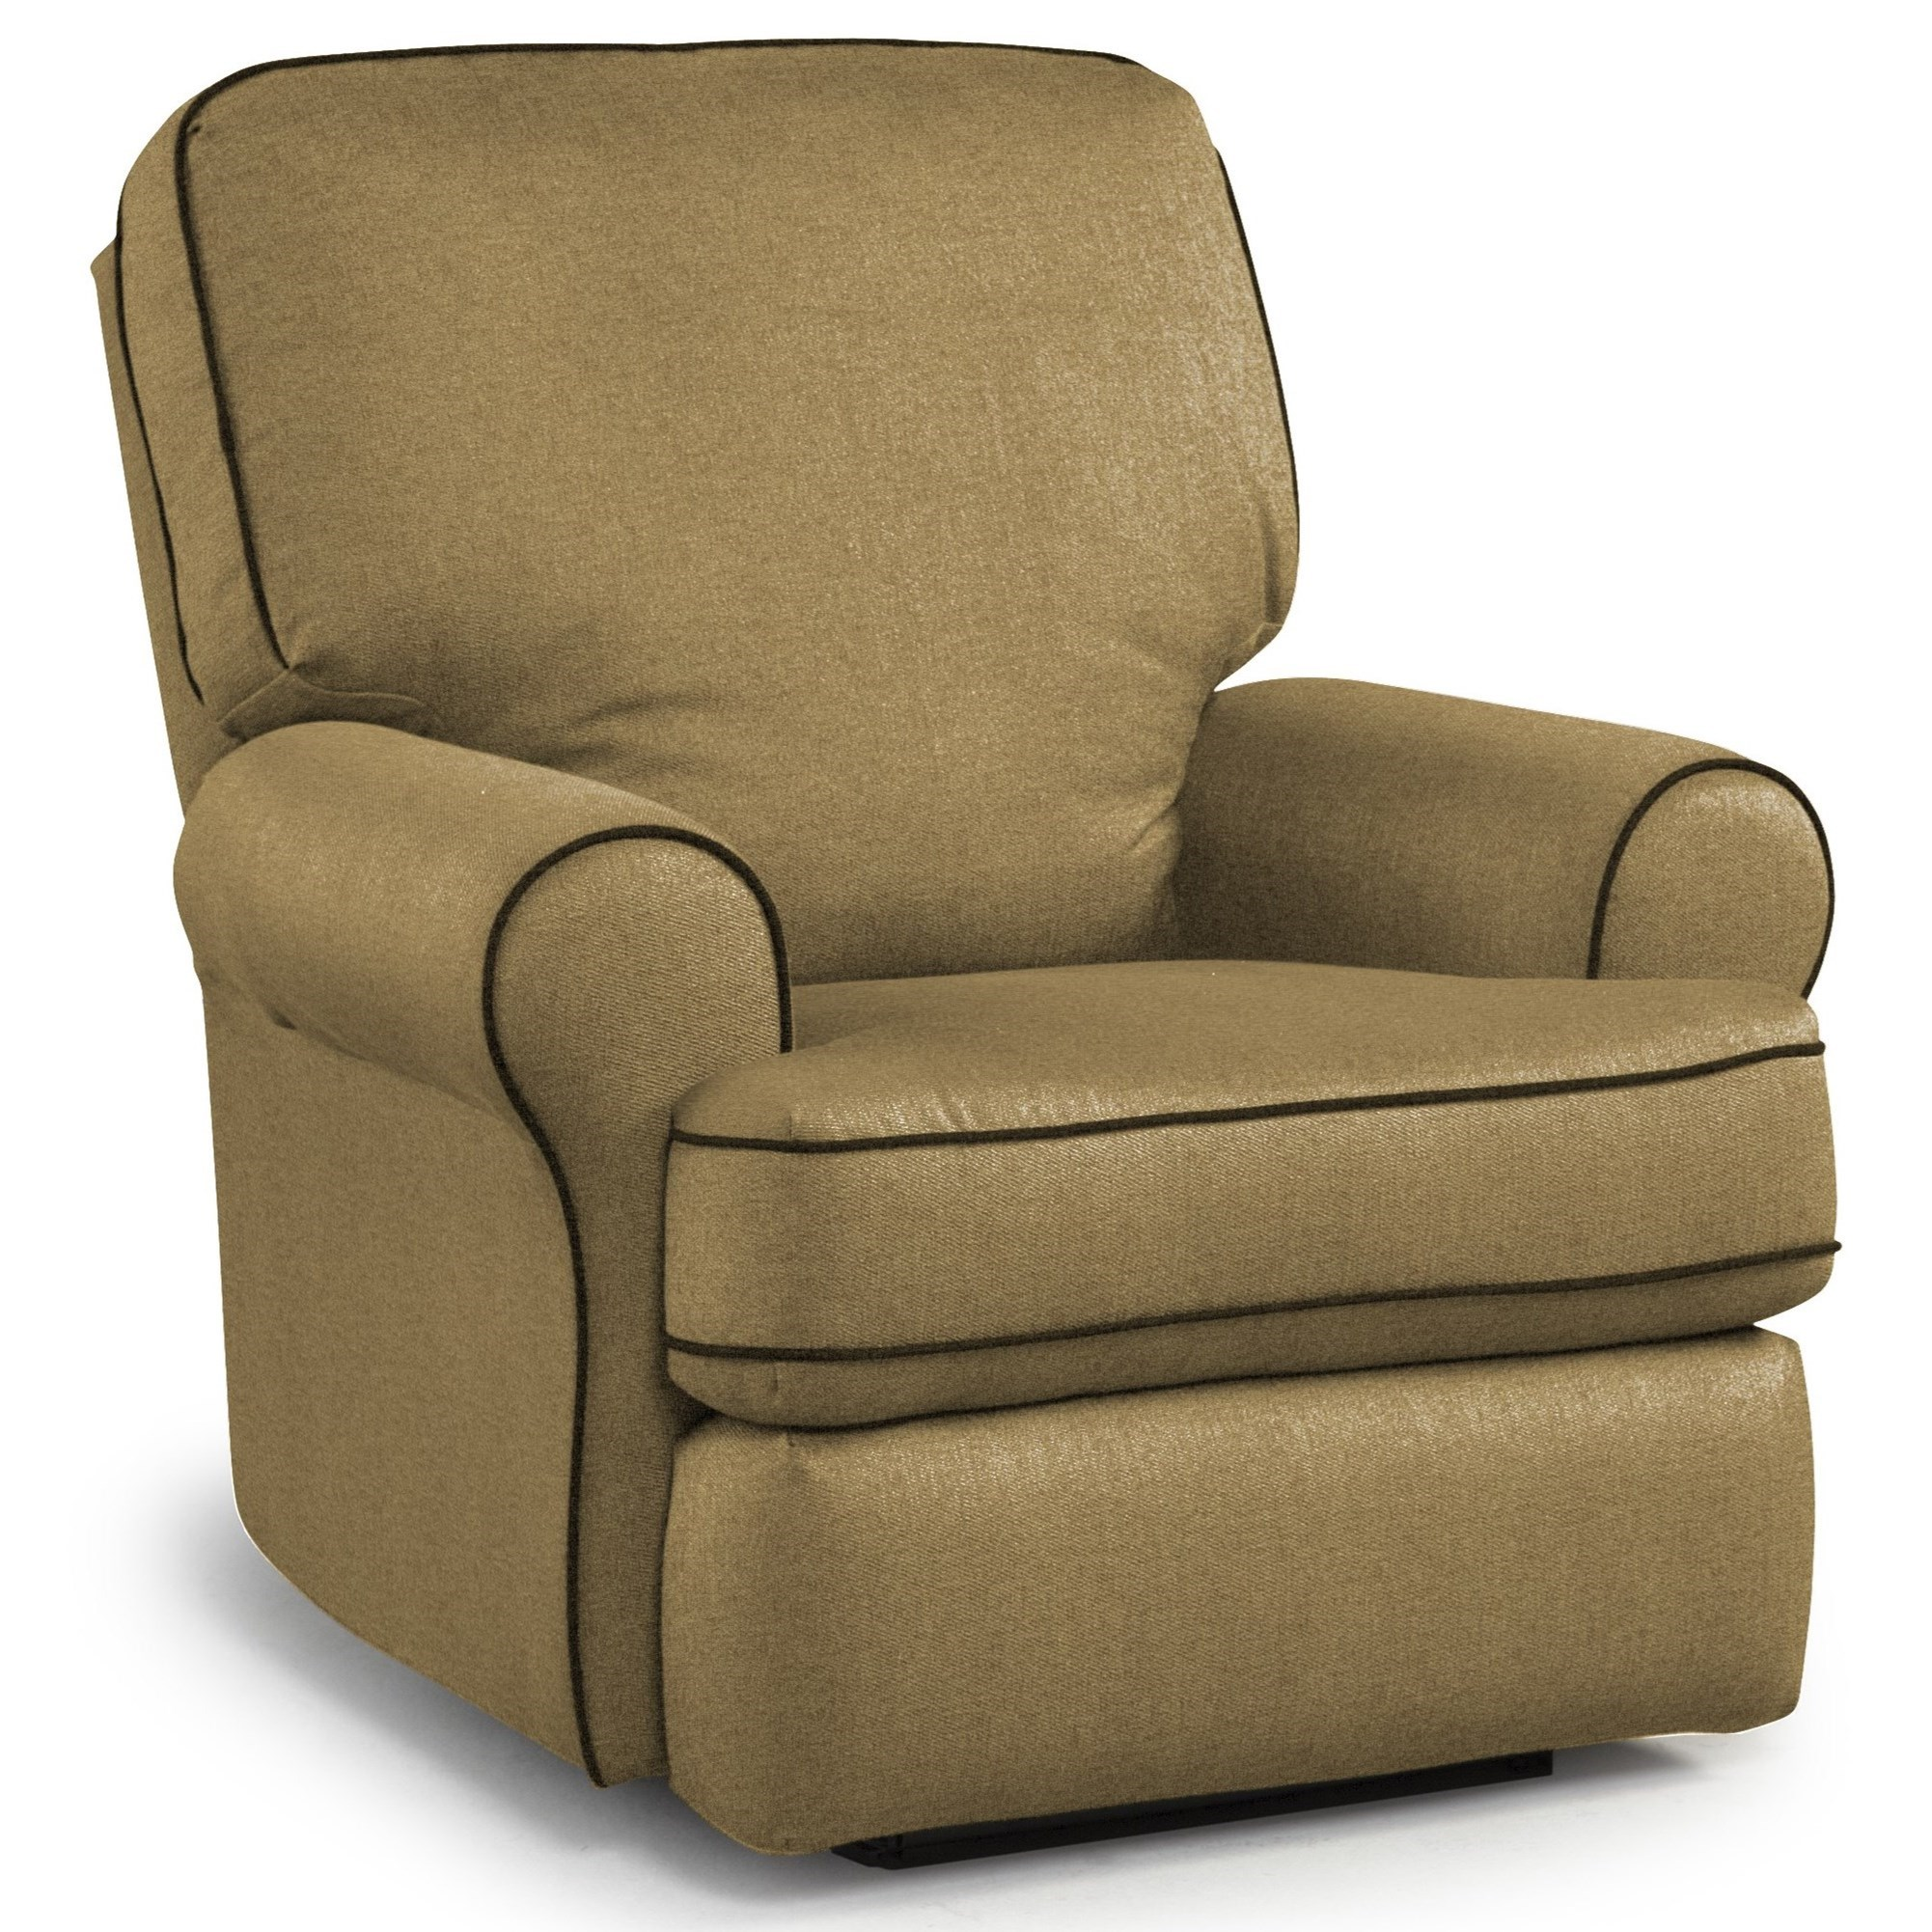 Tryp Power Swivel Glider Recliner by Best Home Furnishings at Van Hill Furniture